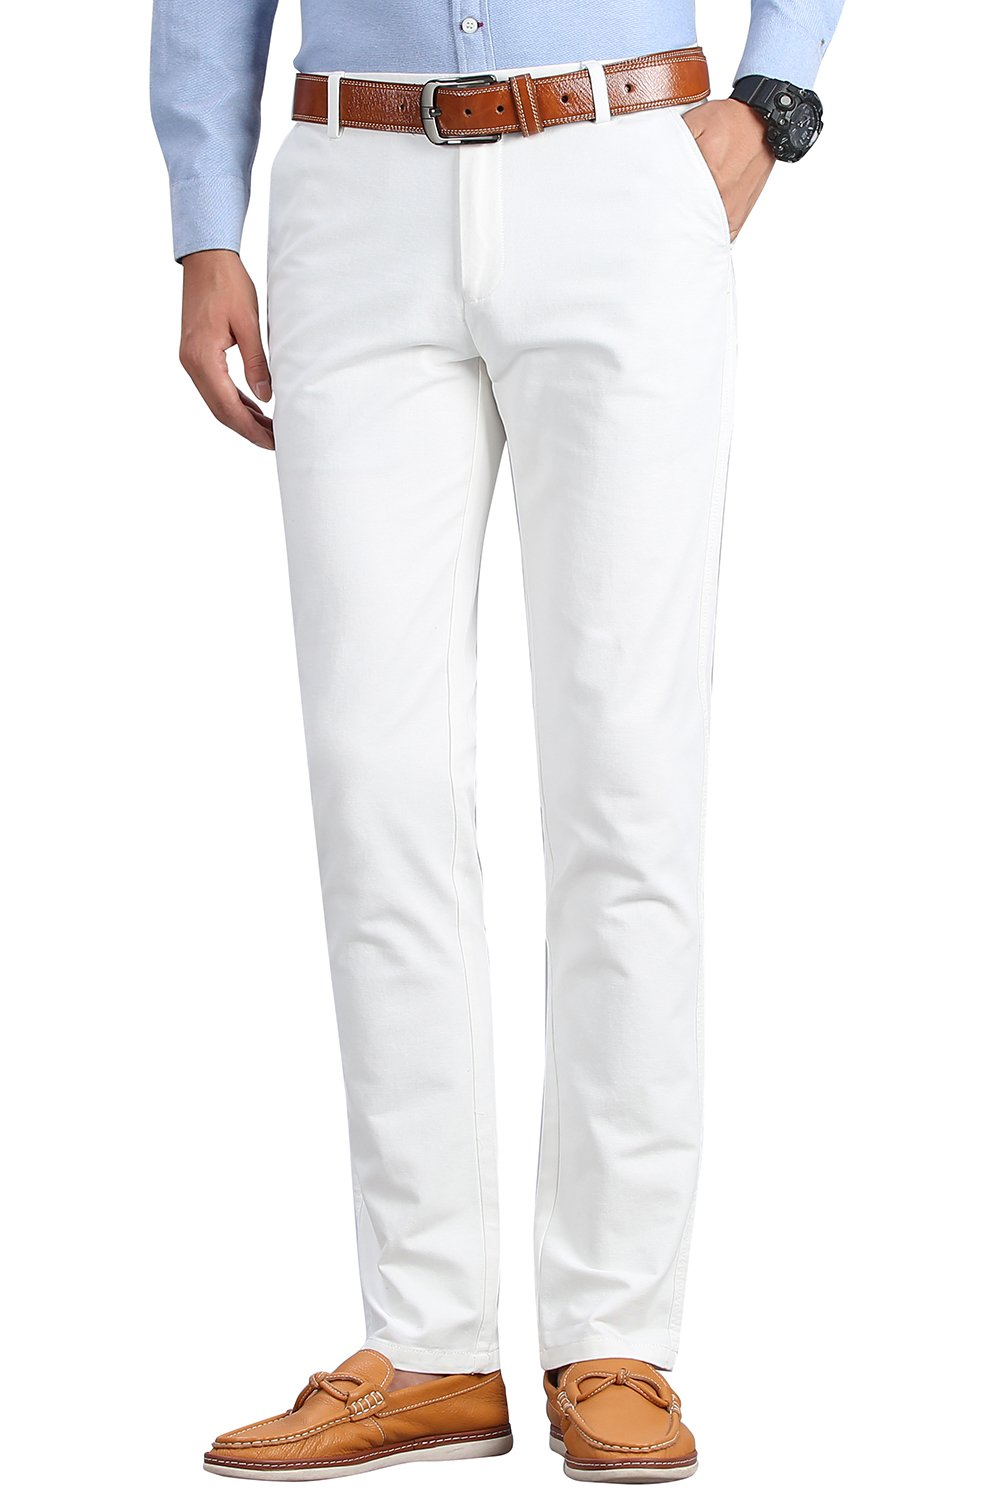 INFLATION Men's Stretchy Slim Fit Casual Pants,100% Cotton Flat Front Trousers Dress Pants for Men,White Pants Size 32